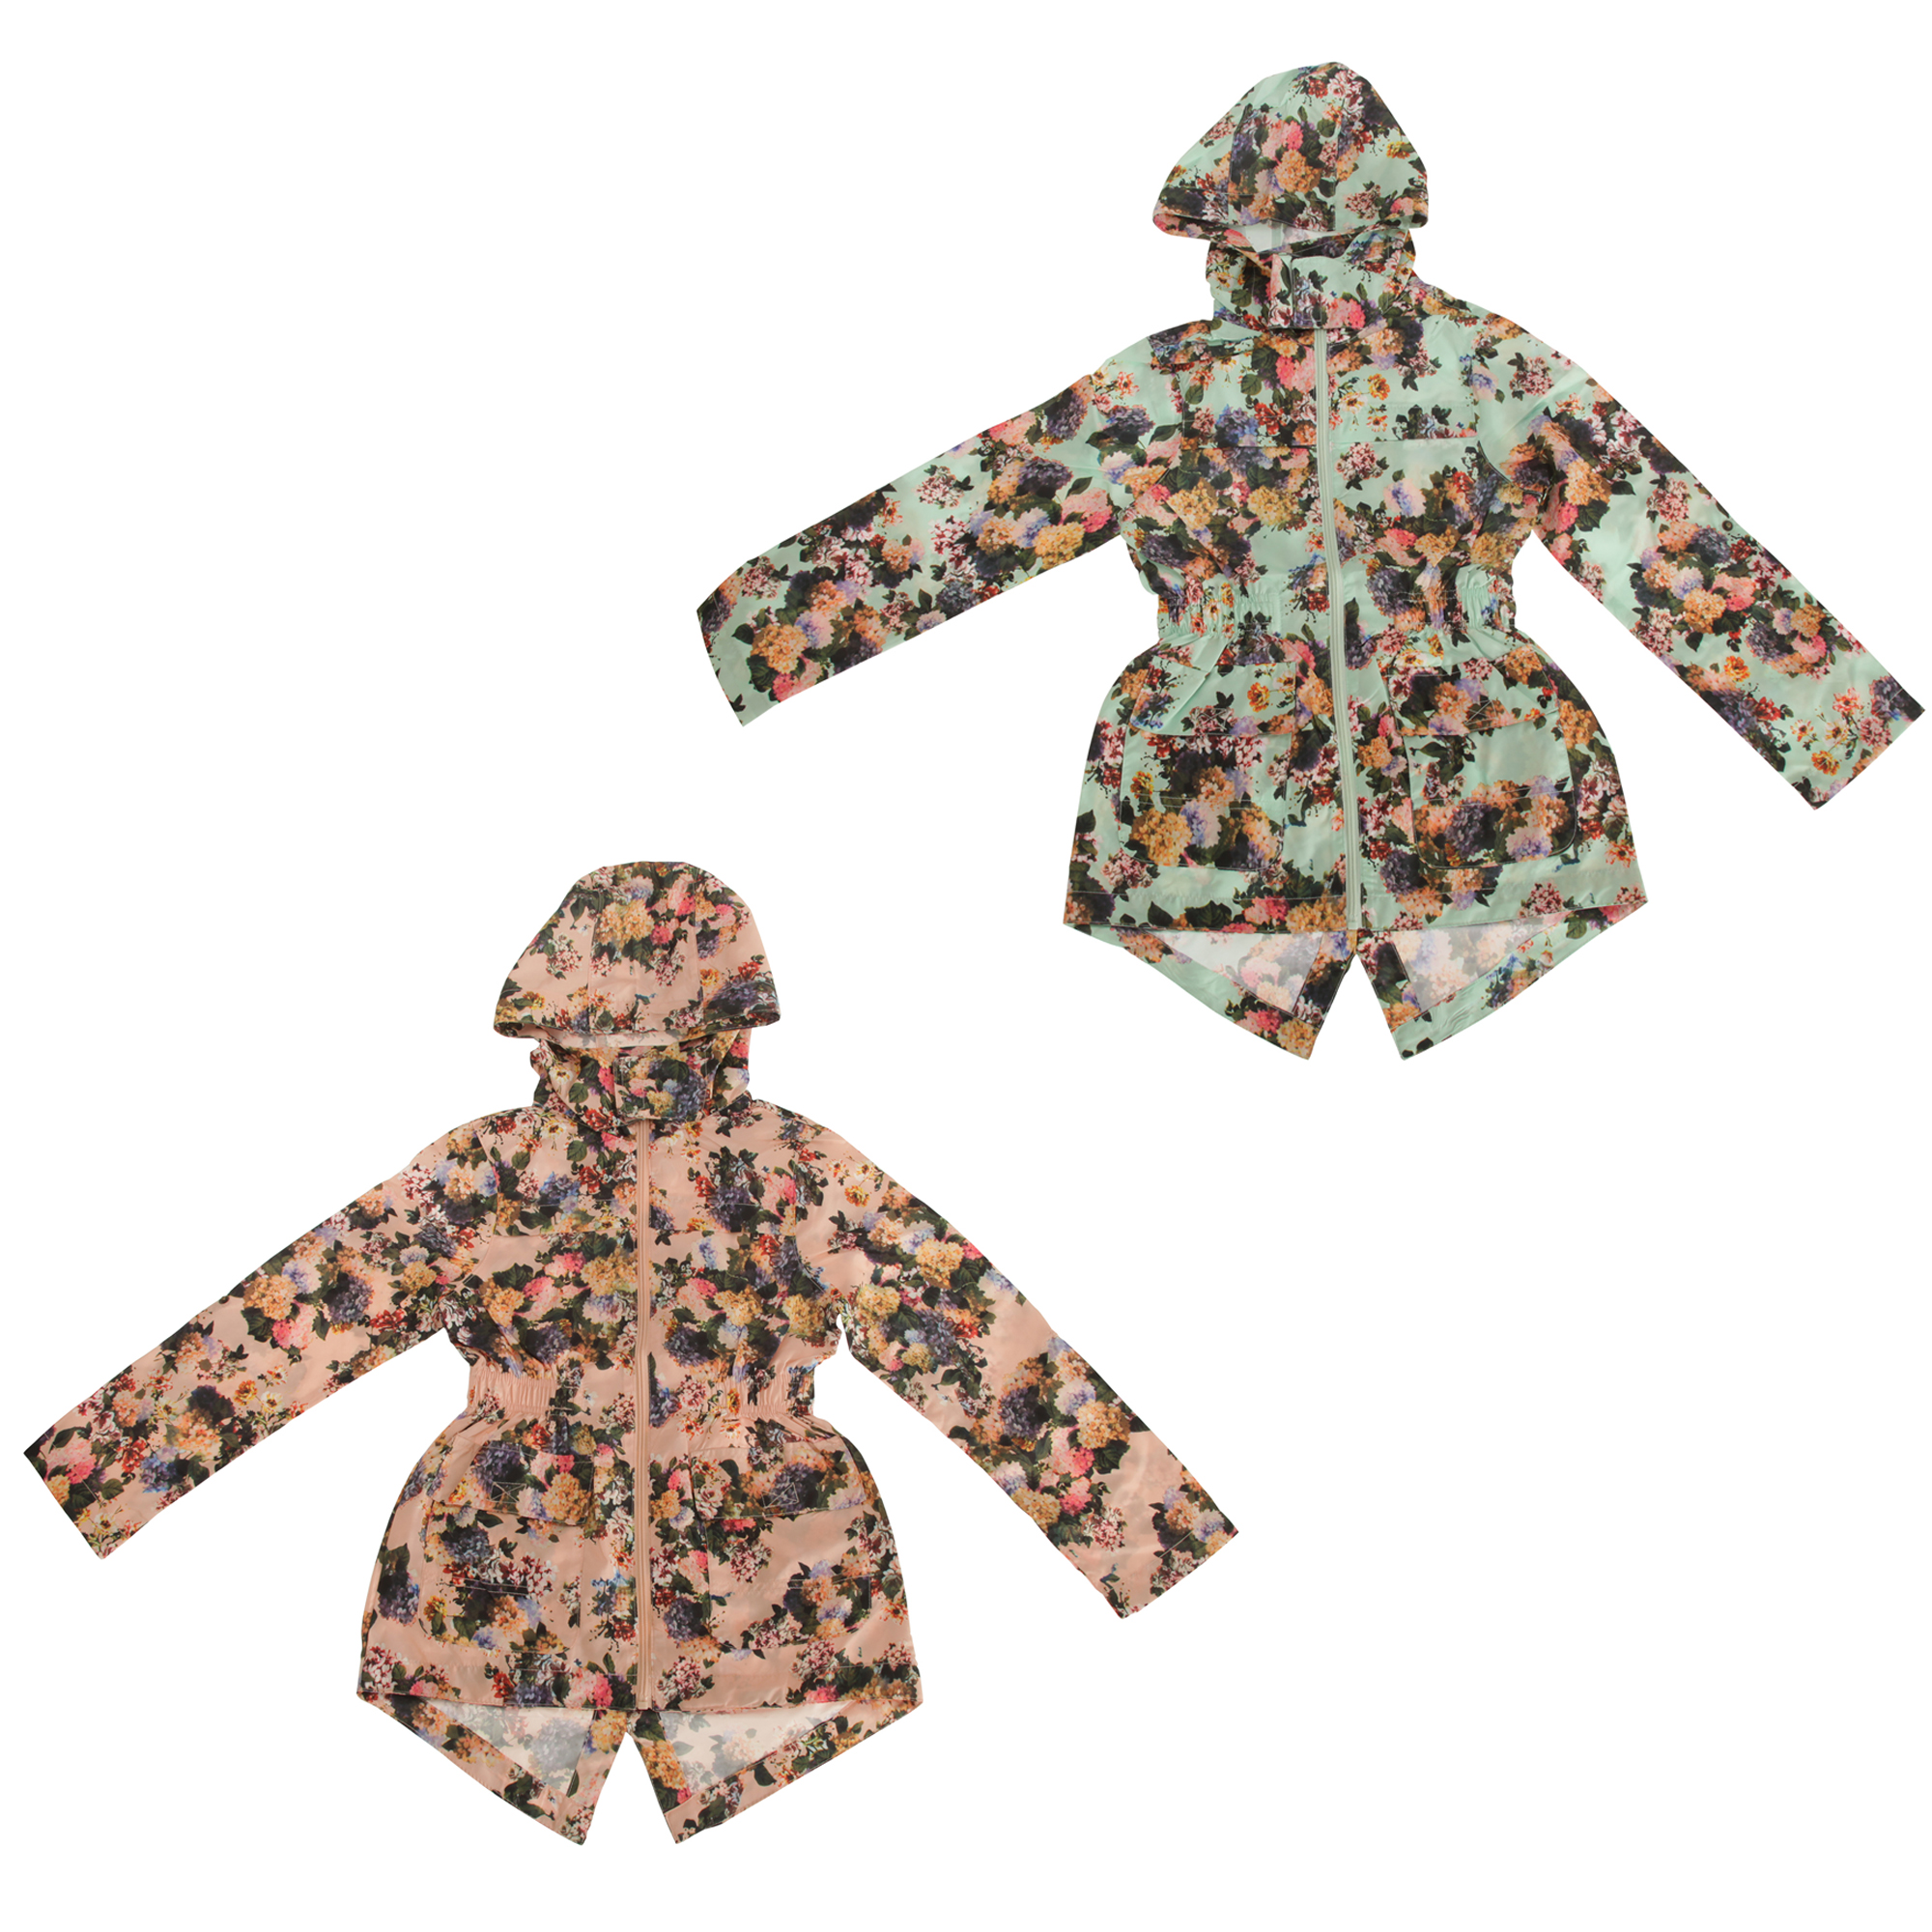 Bulk, Wholesale, Job Lot, Clearance Assorted Clothing (Dresses, Tops, Footwear And More) (Box 7) (Brave Soul Girls Jackets (Set of 19))